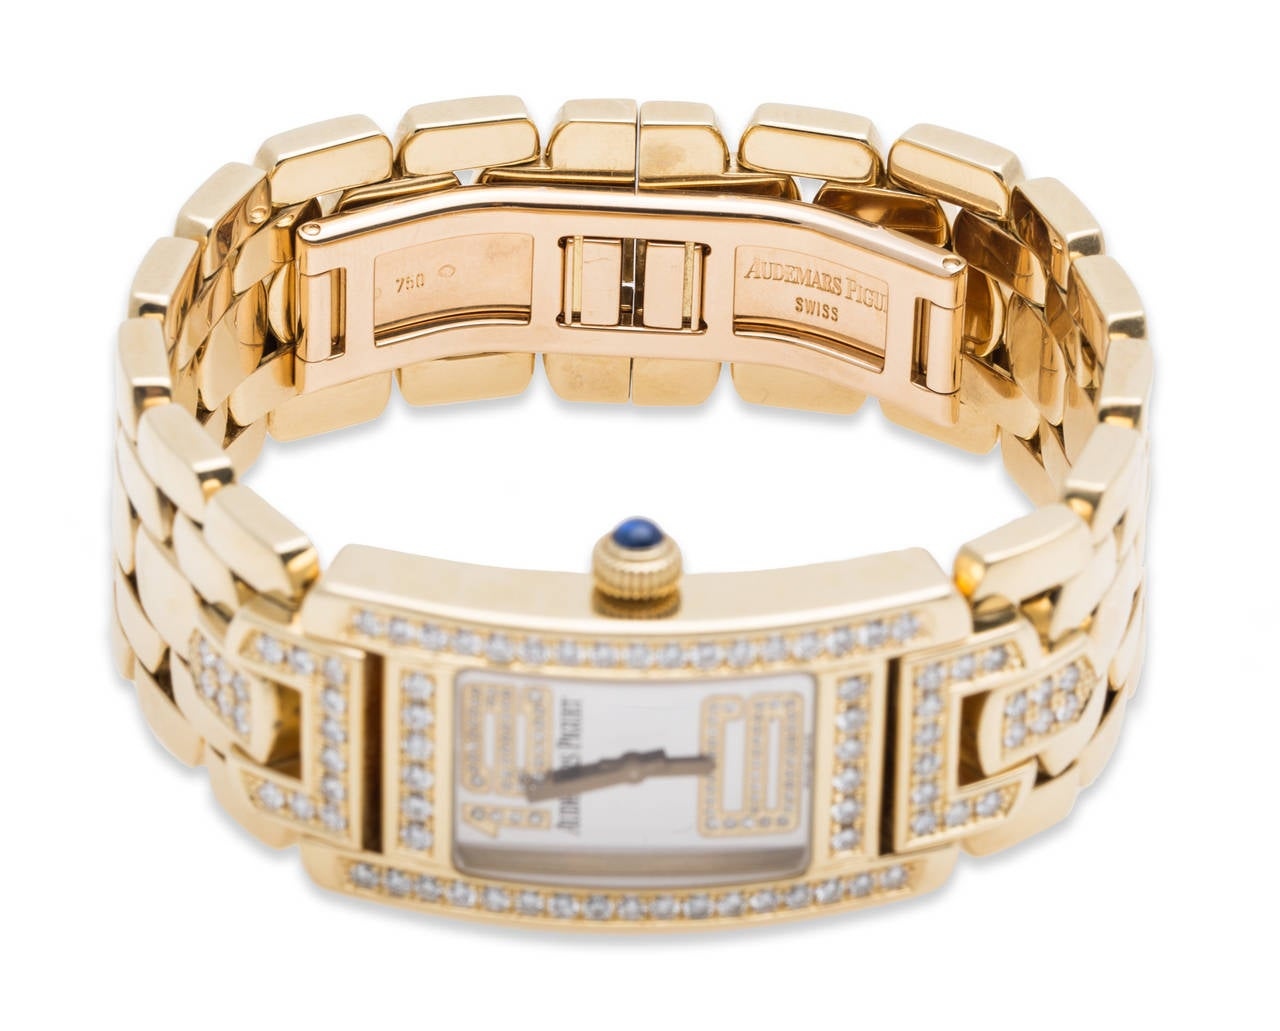 Audemars Piguet Ladies Yellow Gold and Diamond Promesse Quartz Wristwatch In Excellent Condition For Sale In Sunny Isles Beach, FL